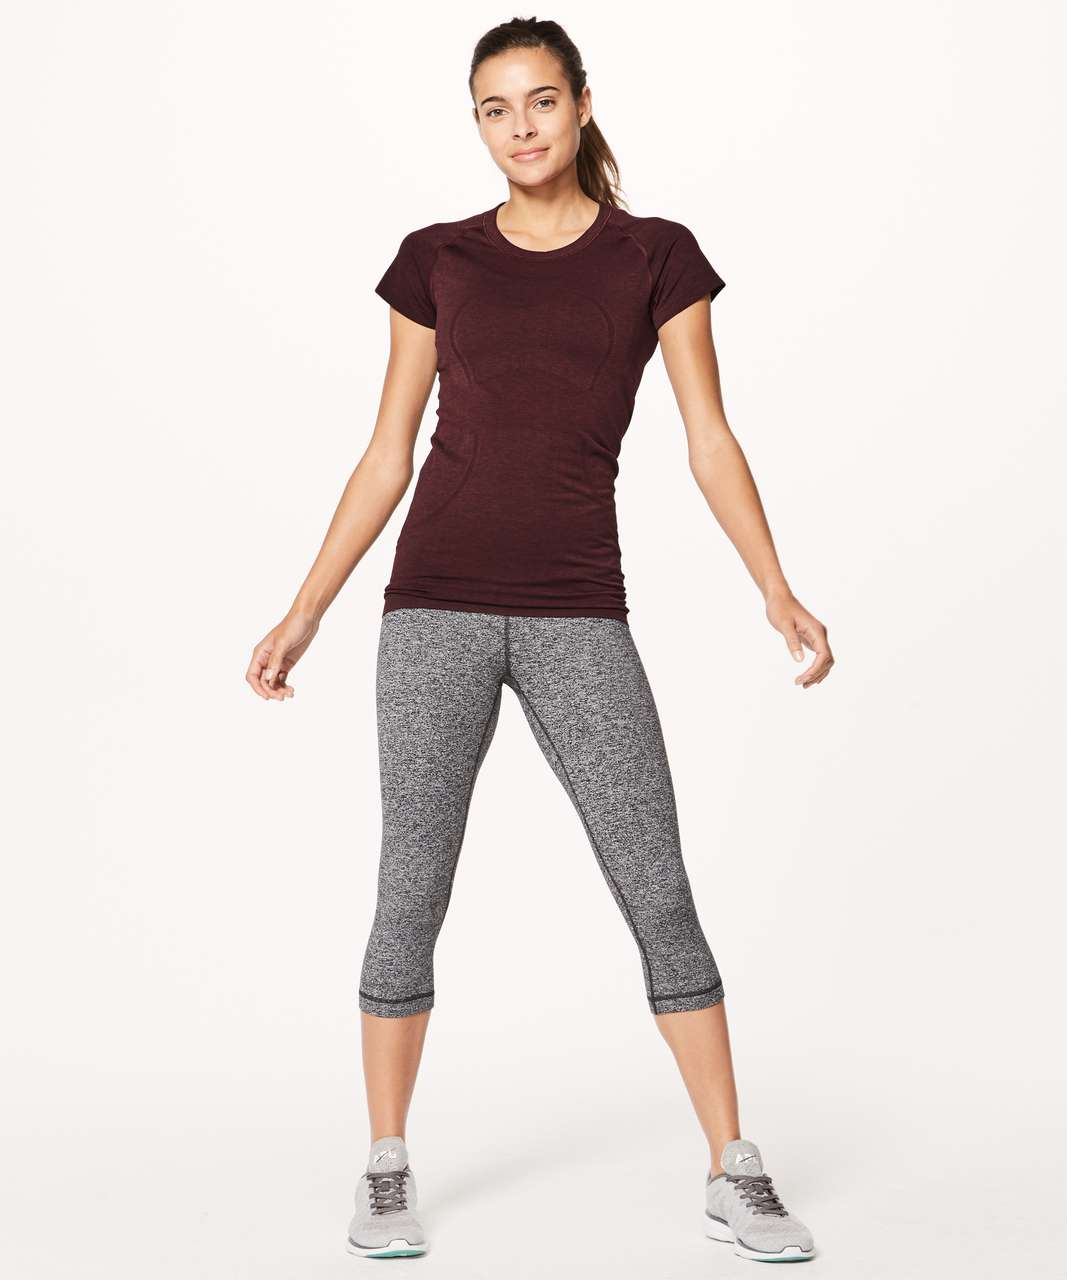 Lululemon Swiftly Tech Short Sleeve Crew - Deep Rouge / Black